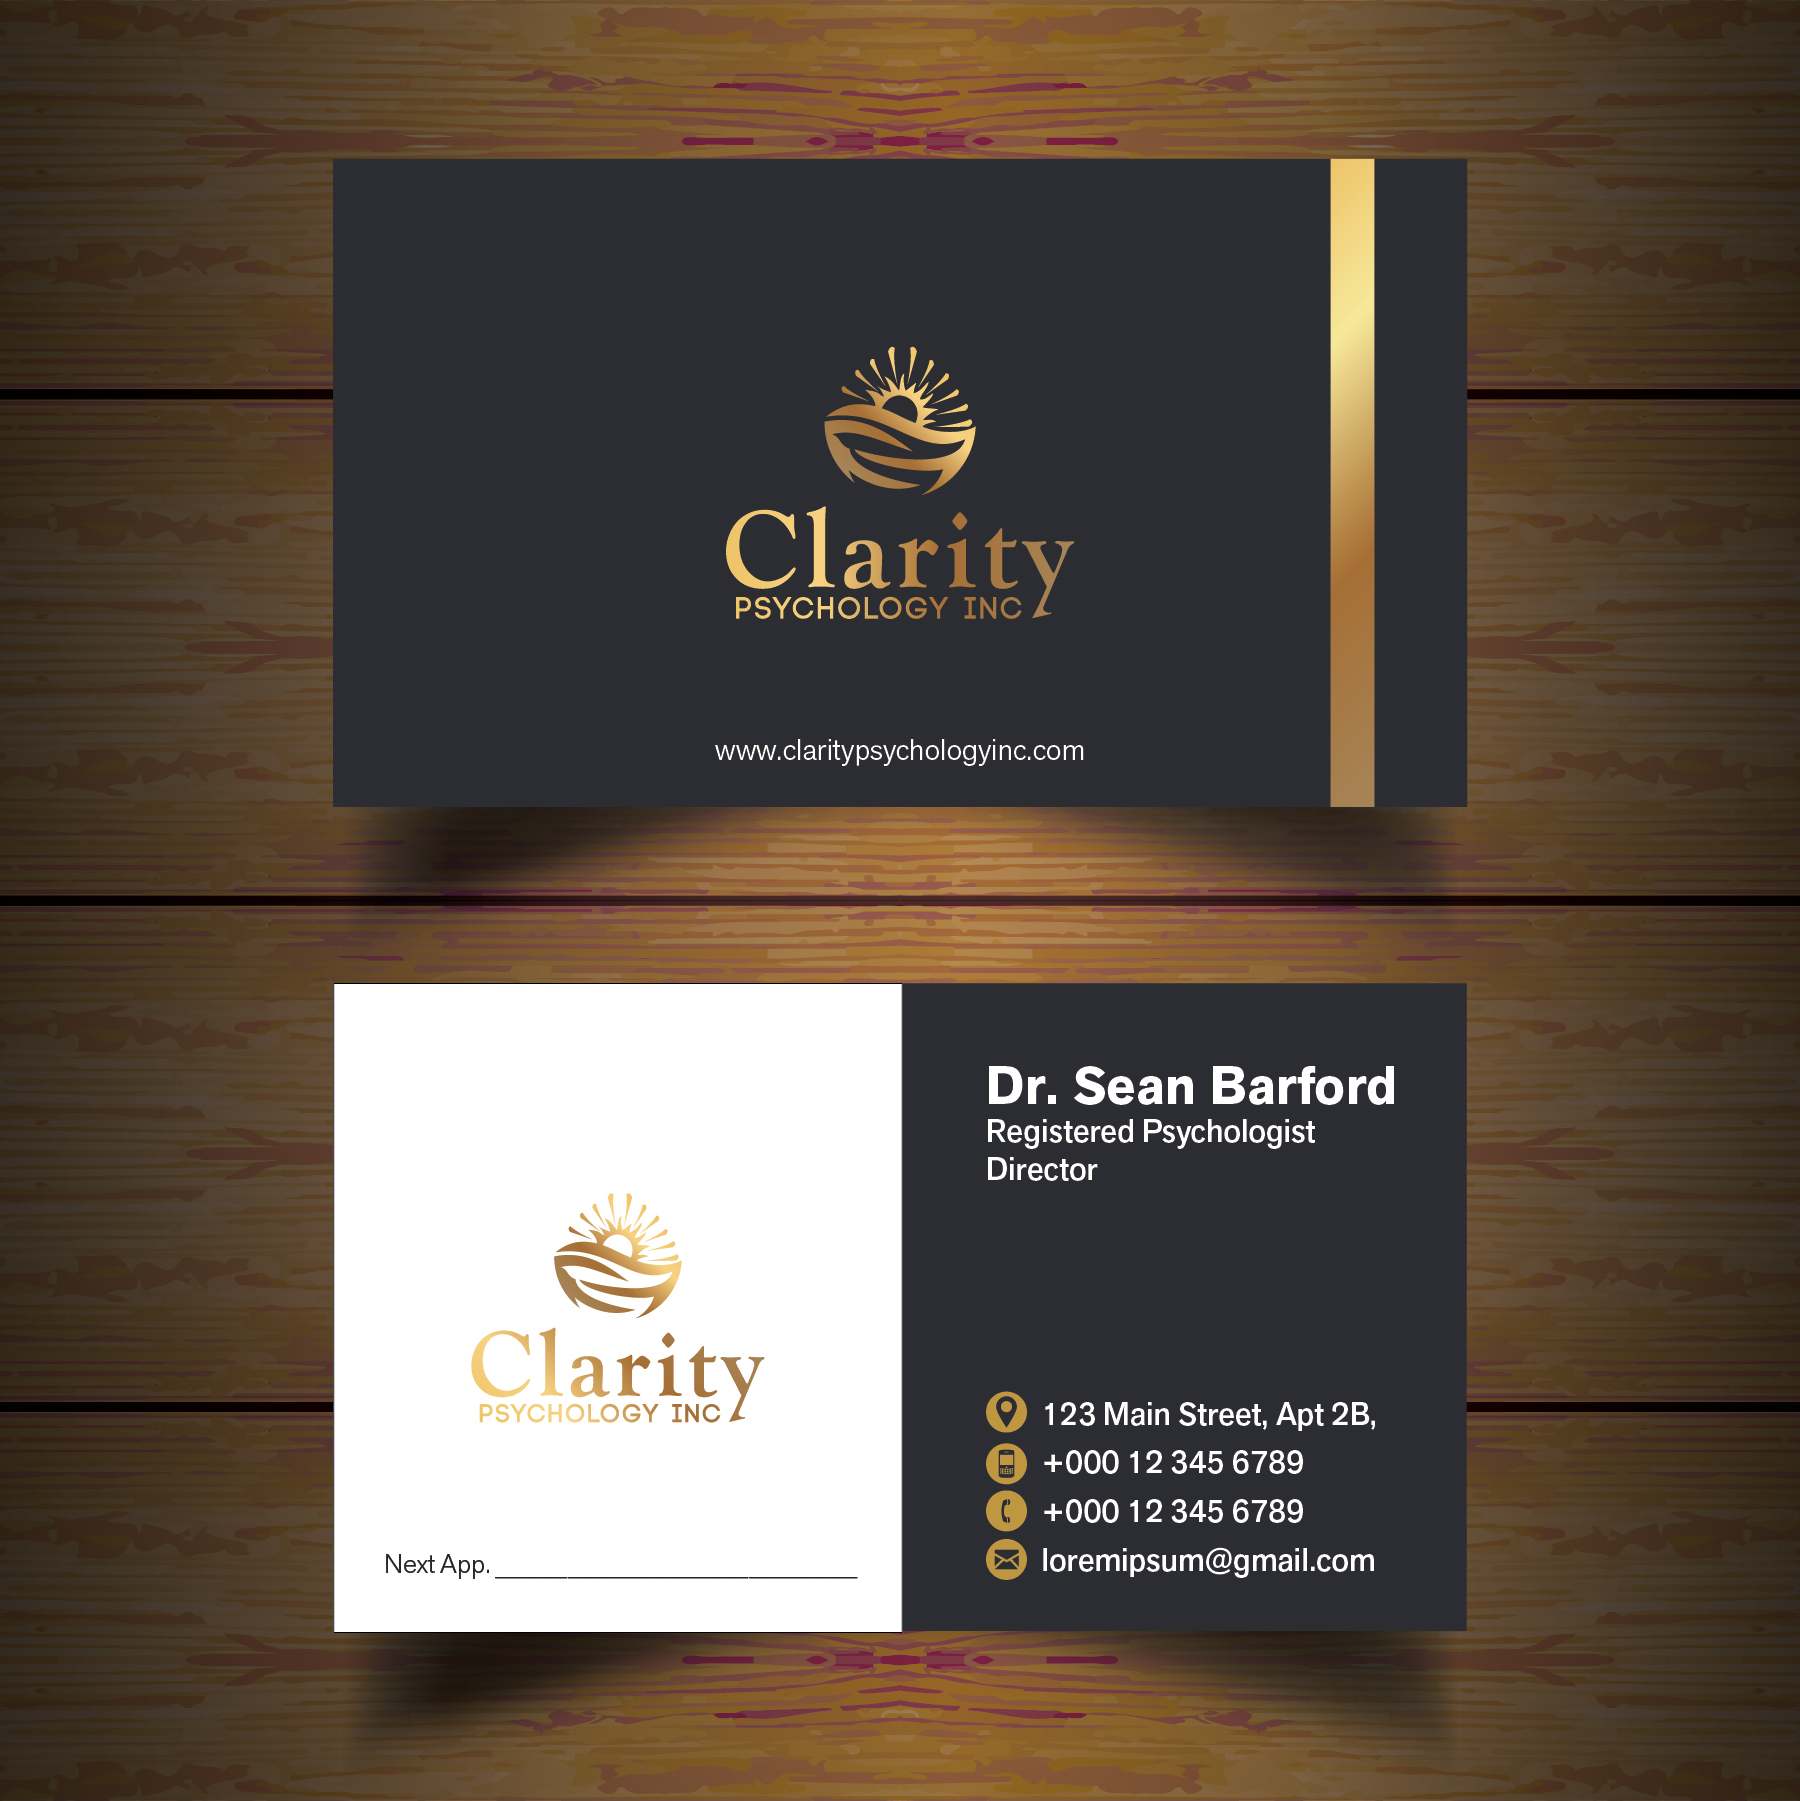 Modern Business Cards For Psychologists Photos Business Card Ideas